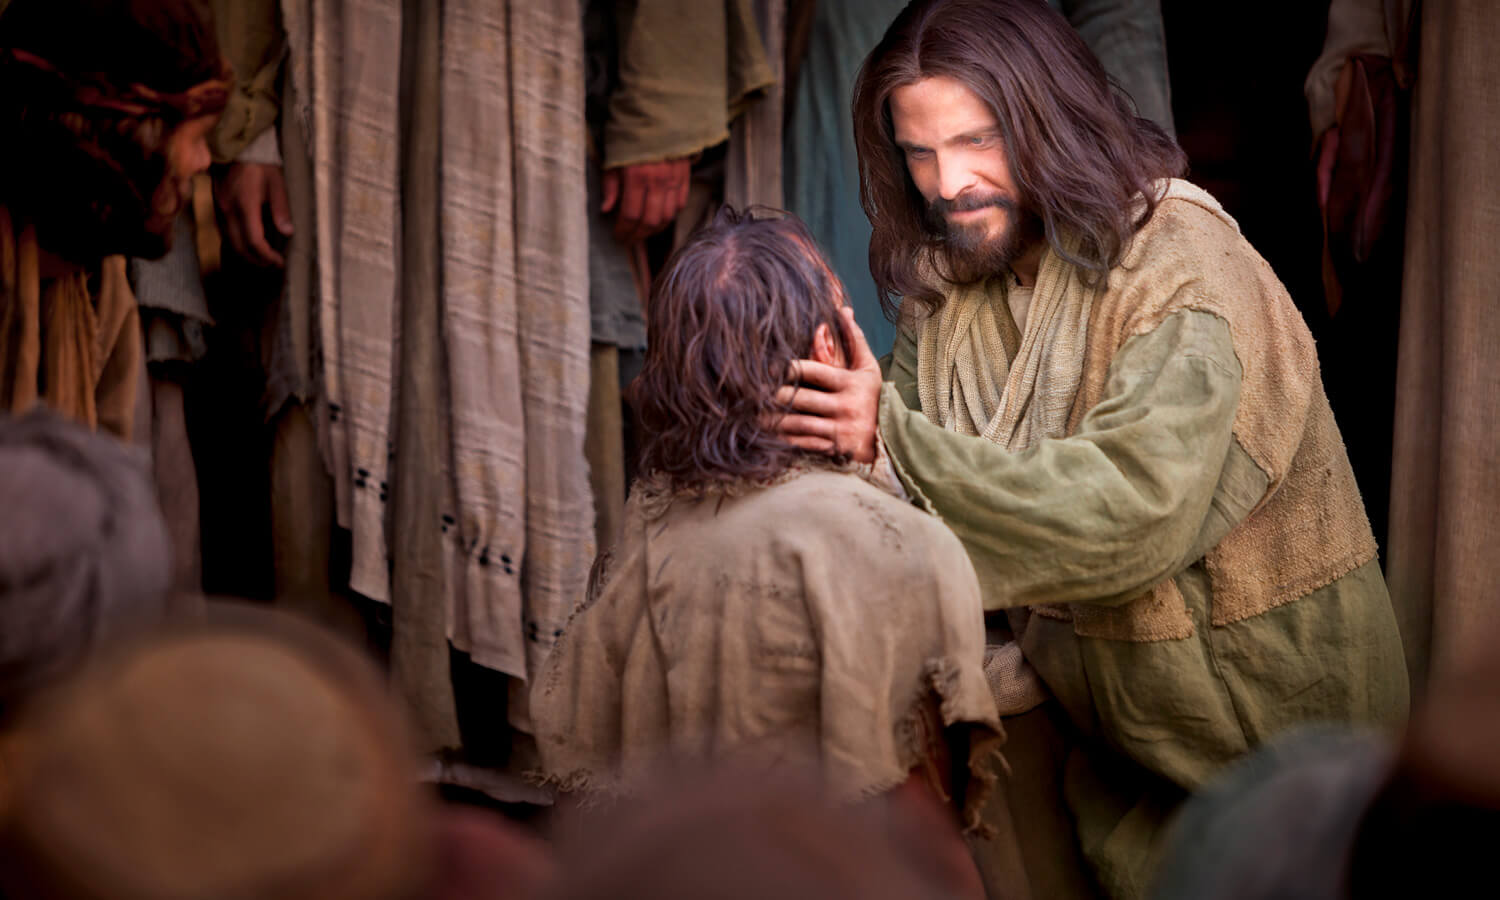 Why did Jesus forbid the people to tell others about miracles He performed?